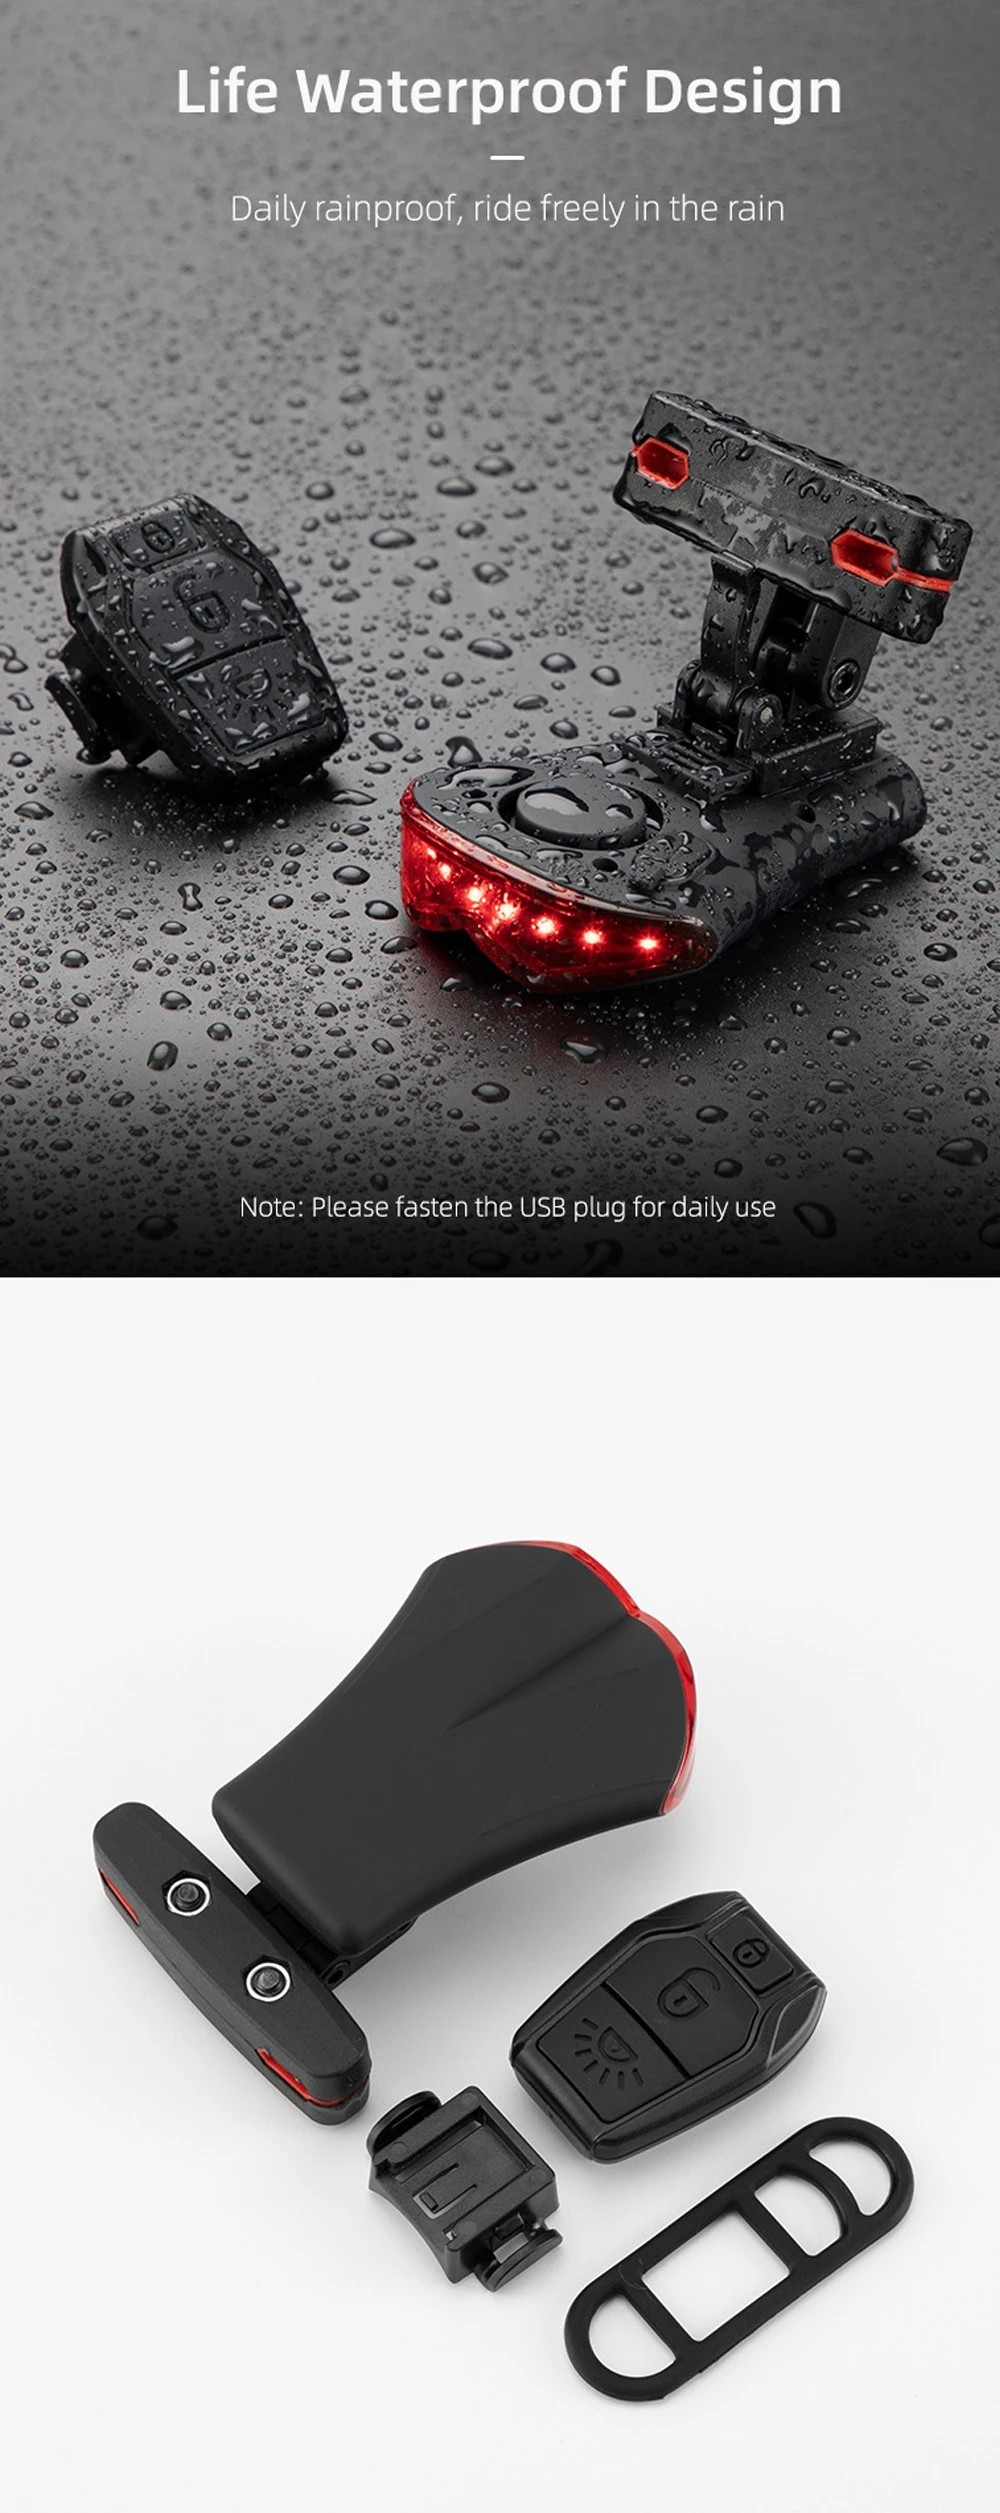 2-in-1 8 LEDs Wireless Remote Control Bike Taillight - Black